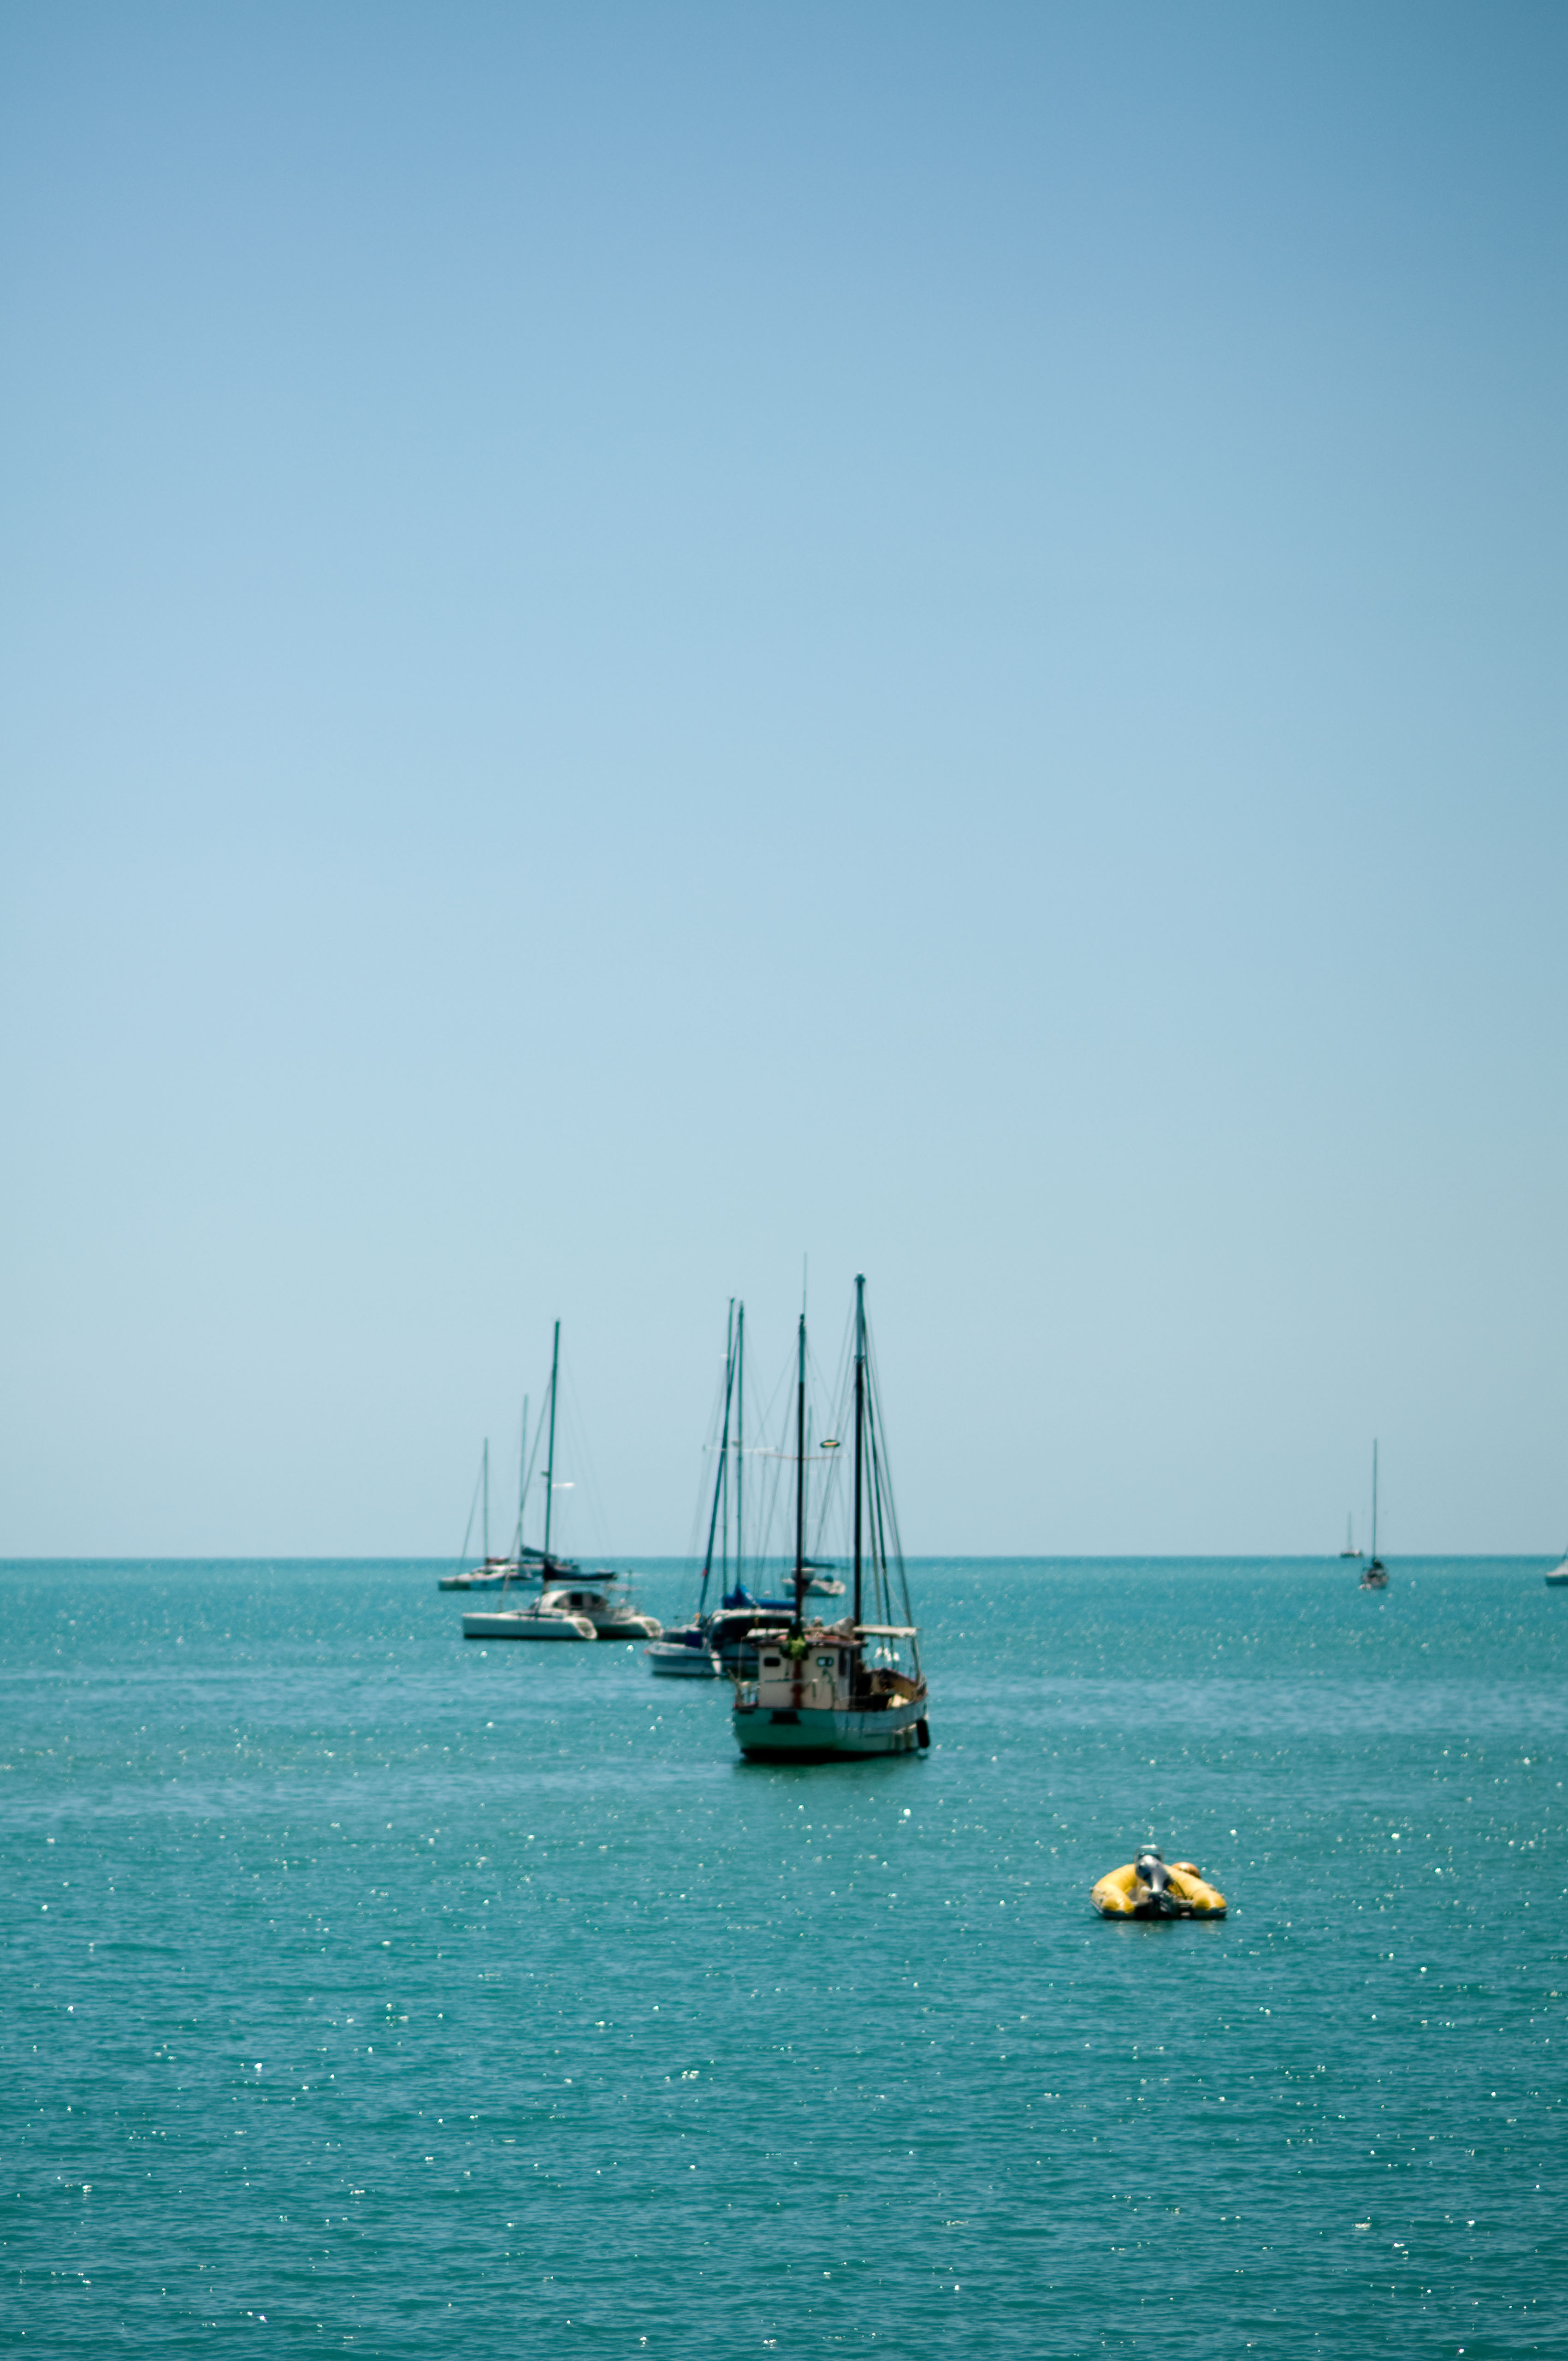 Boats in the sea photo